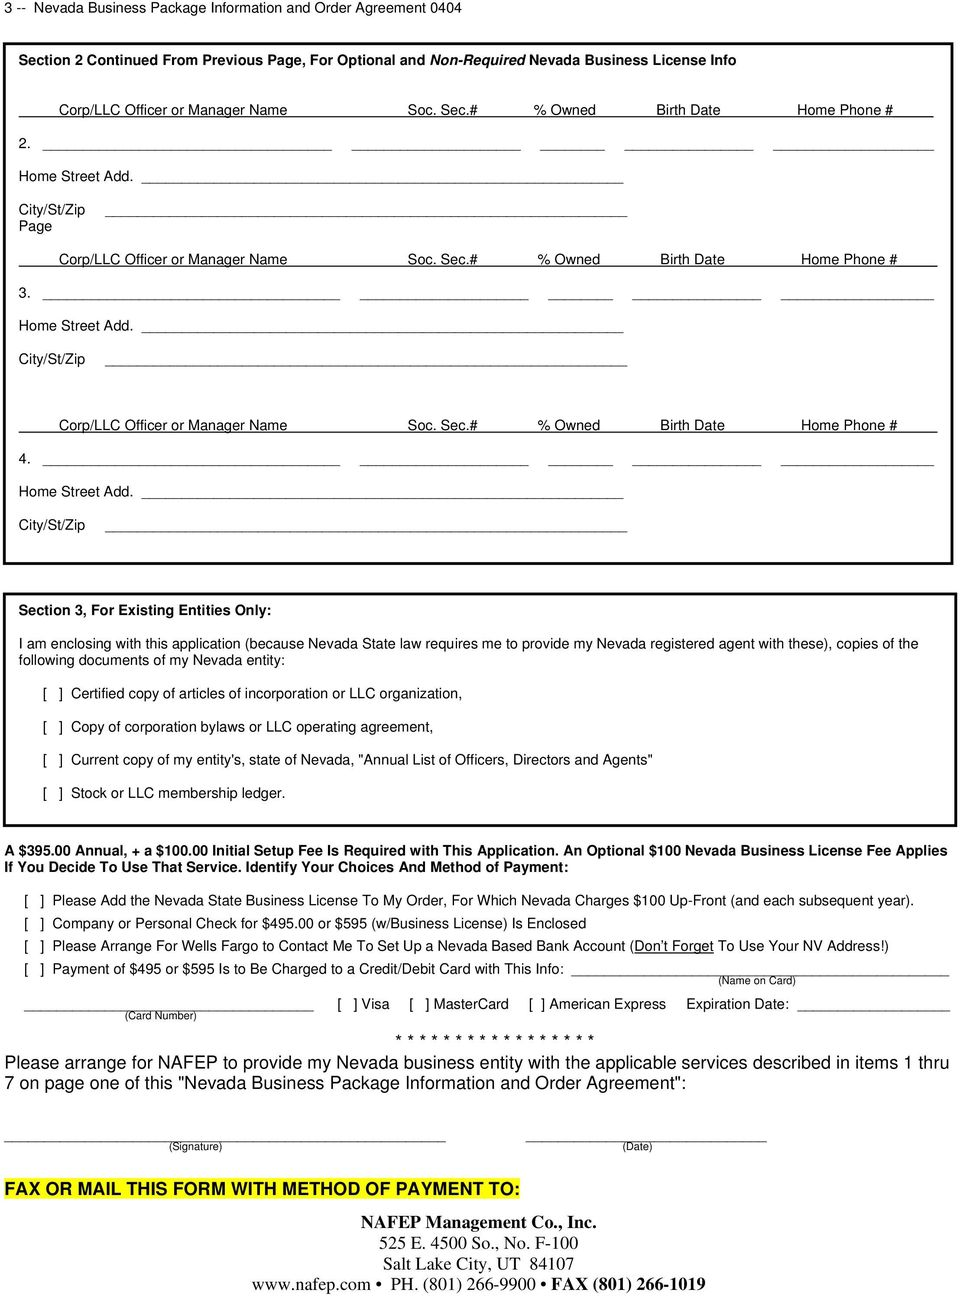 Order Form And Details For Nafep S Nevada Business Package Pdf